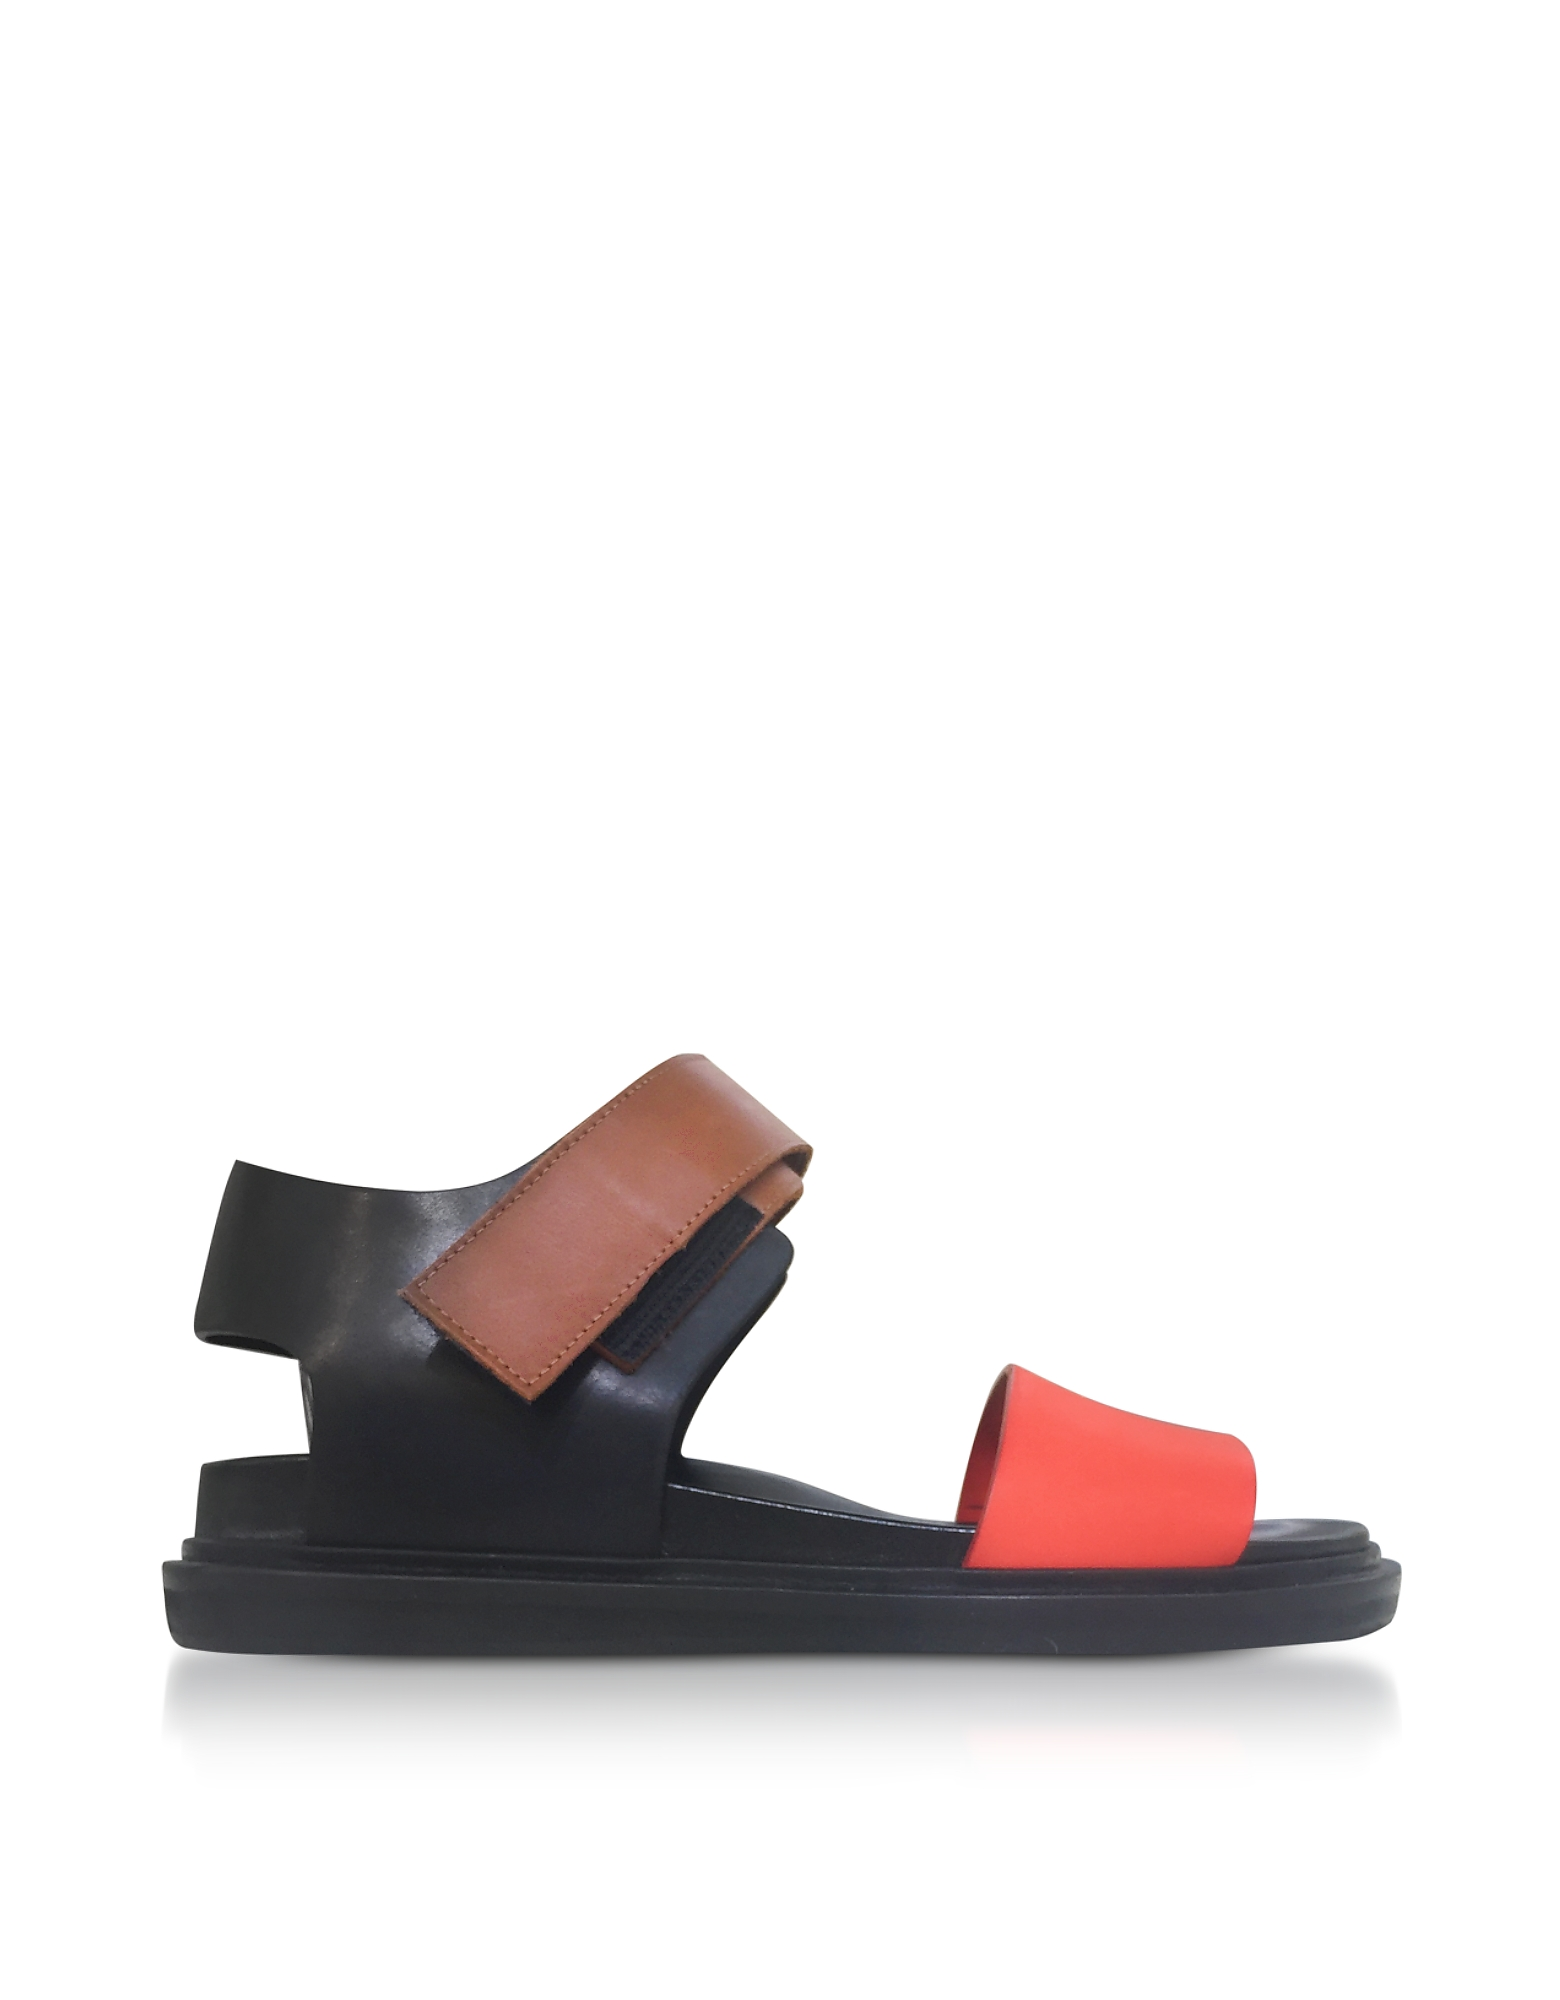 Marni Shoes, Black and Orange Leather Fusbett Sandals